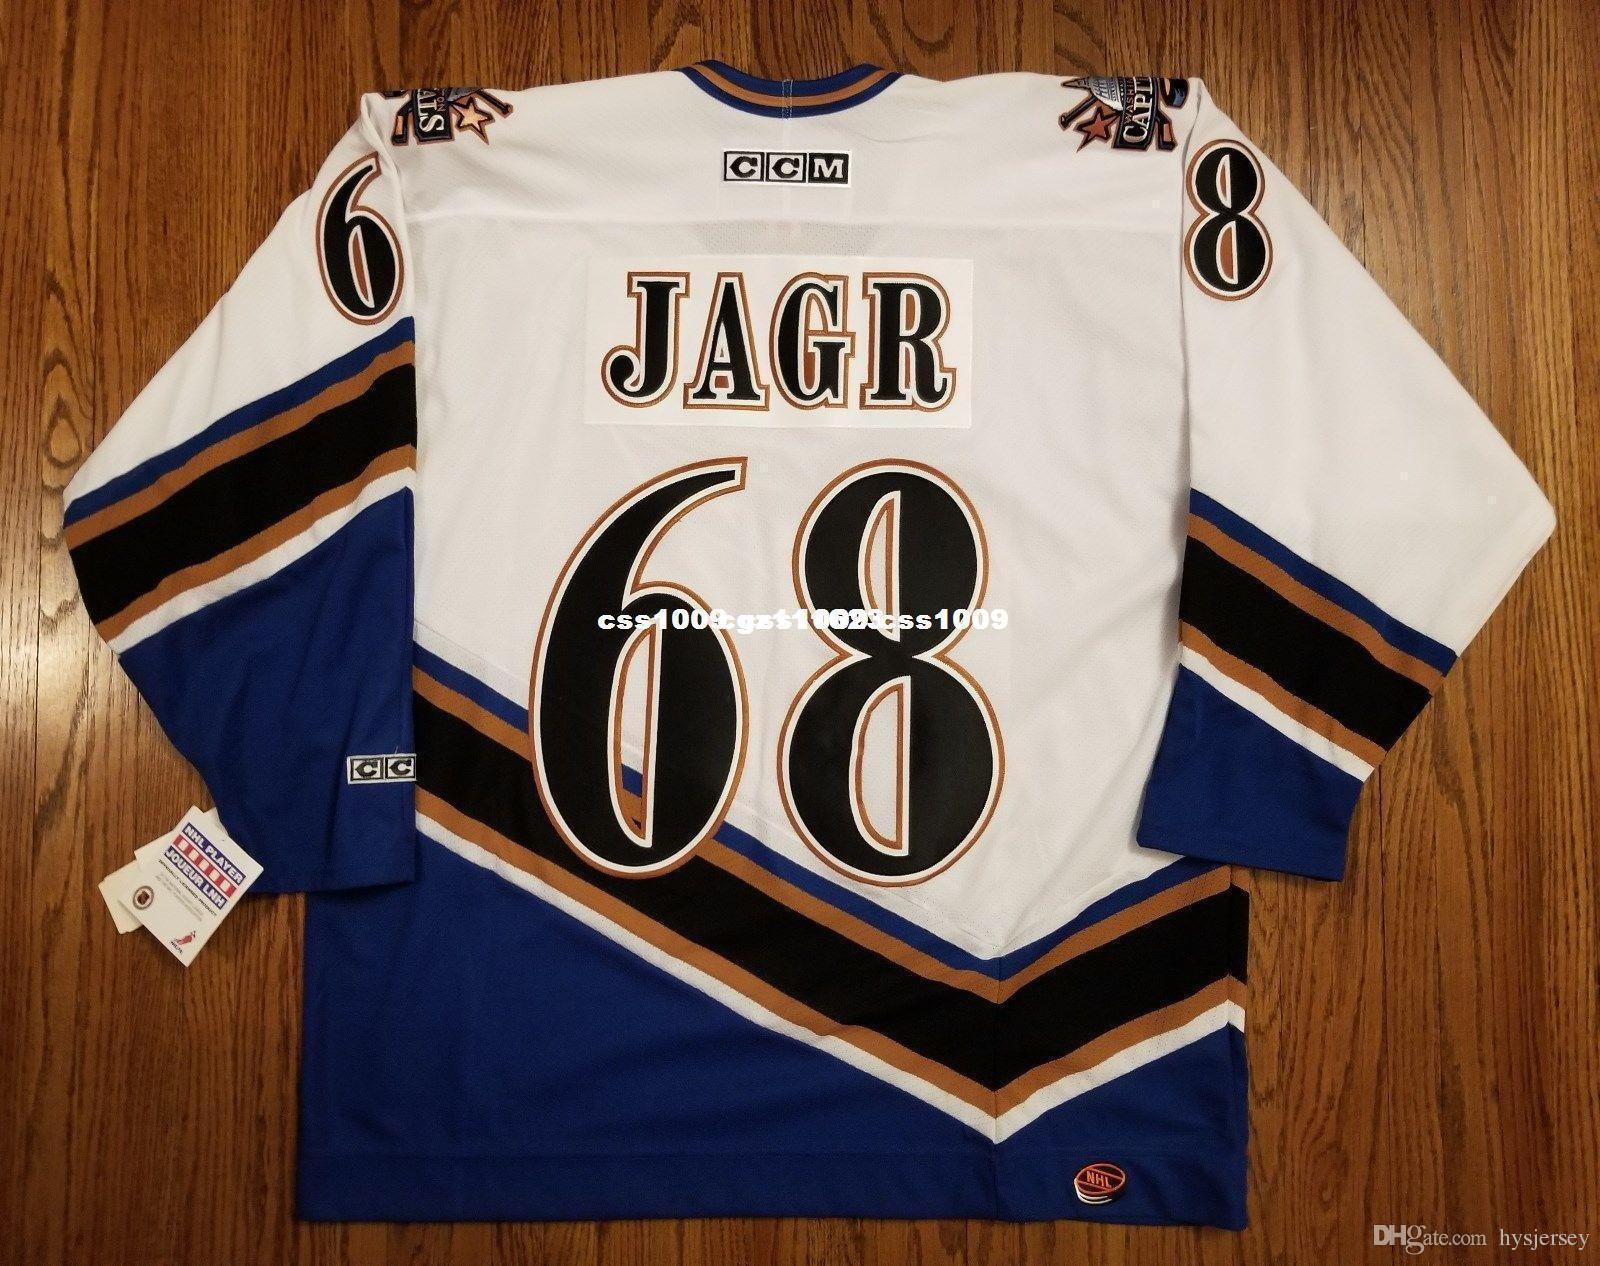 765c6e552 2019 Cheap Custom Jaromir Jagr Vintage Washington Capitals CCM Jersey  Screaming Eagle Mens Personalized Stitching Jerseys From Hysjersey, $55.84  | DHgate.